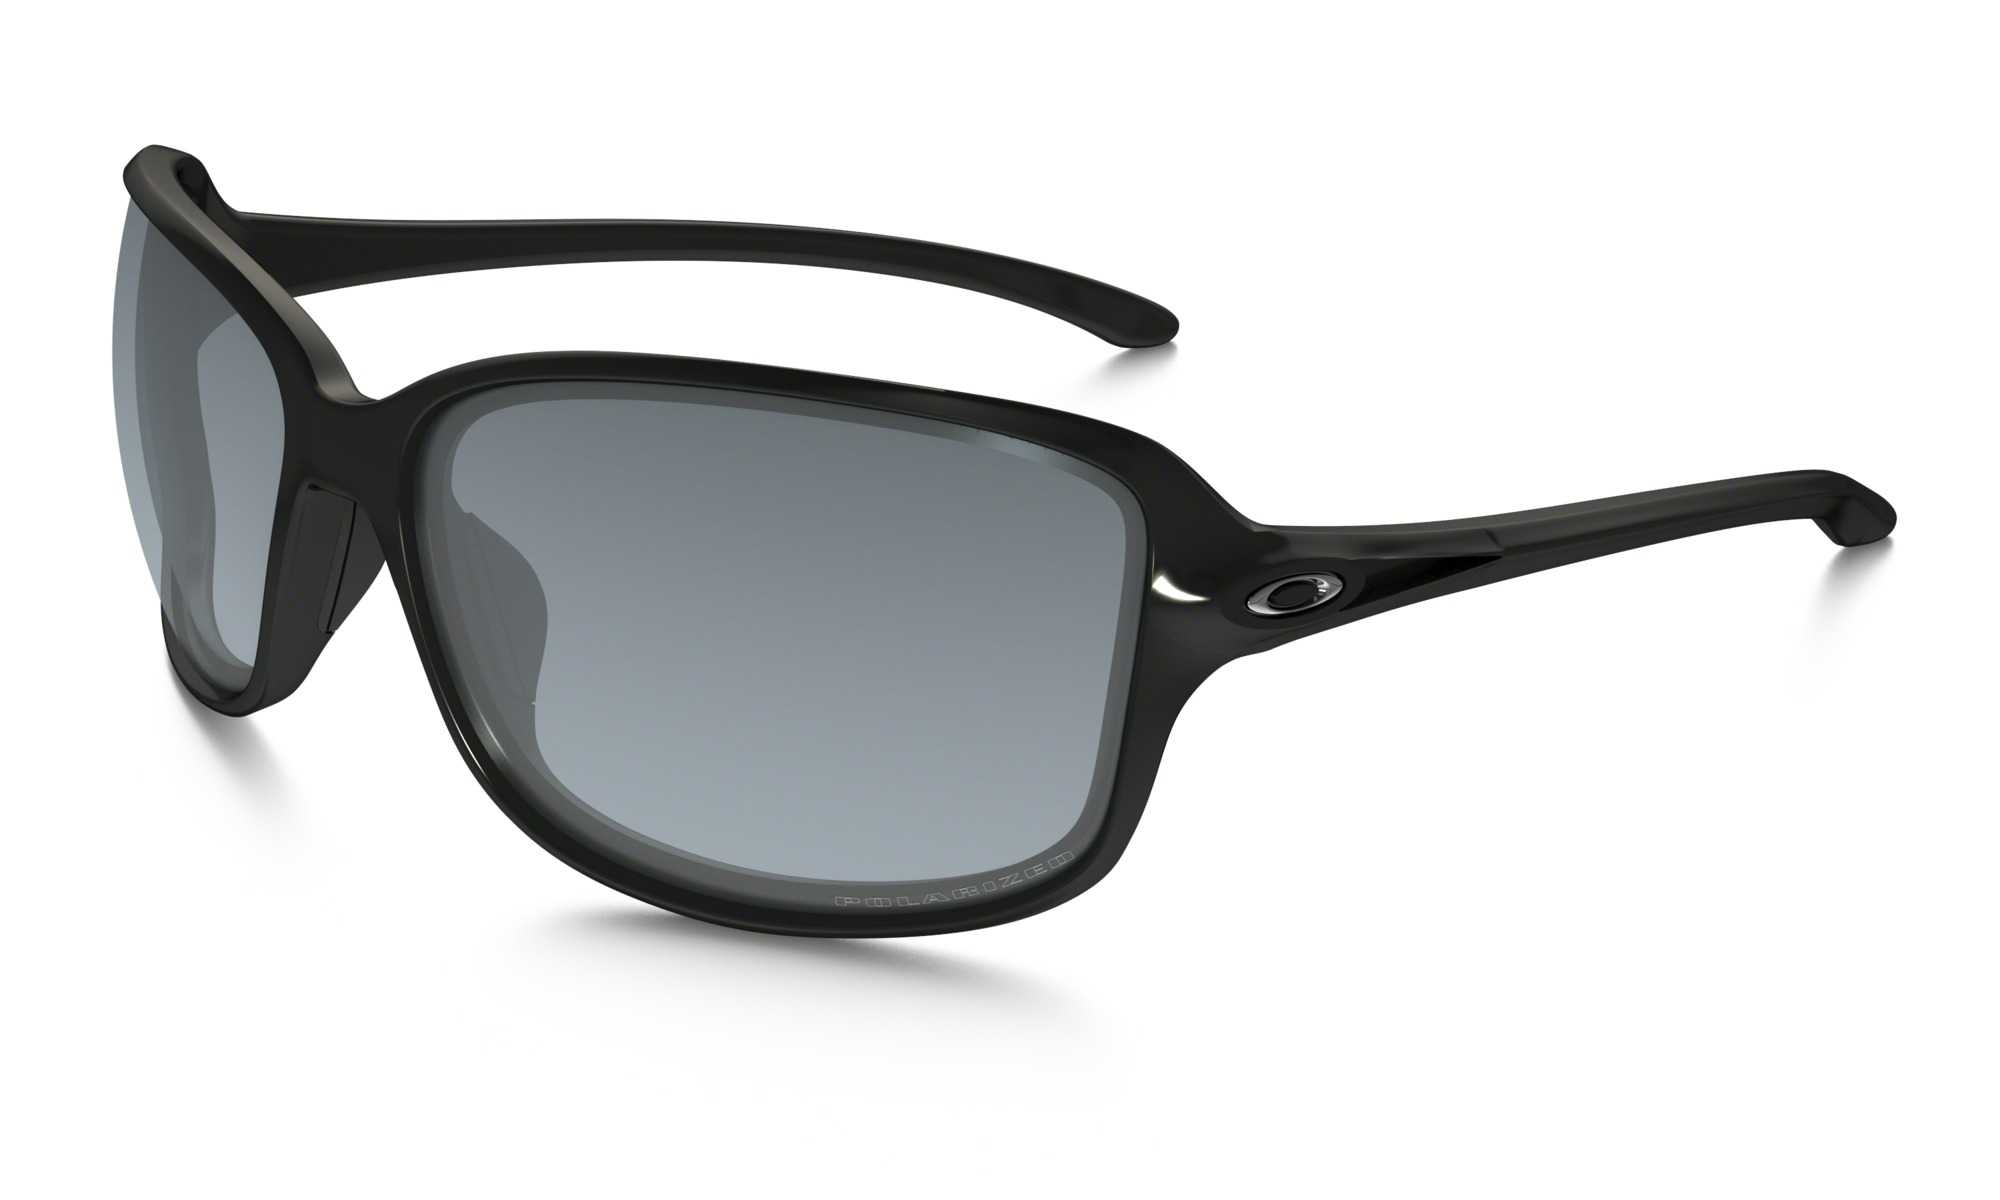 Oakley Cohort Sunglasses Black